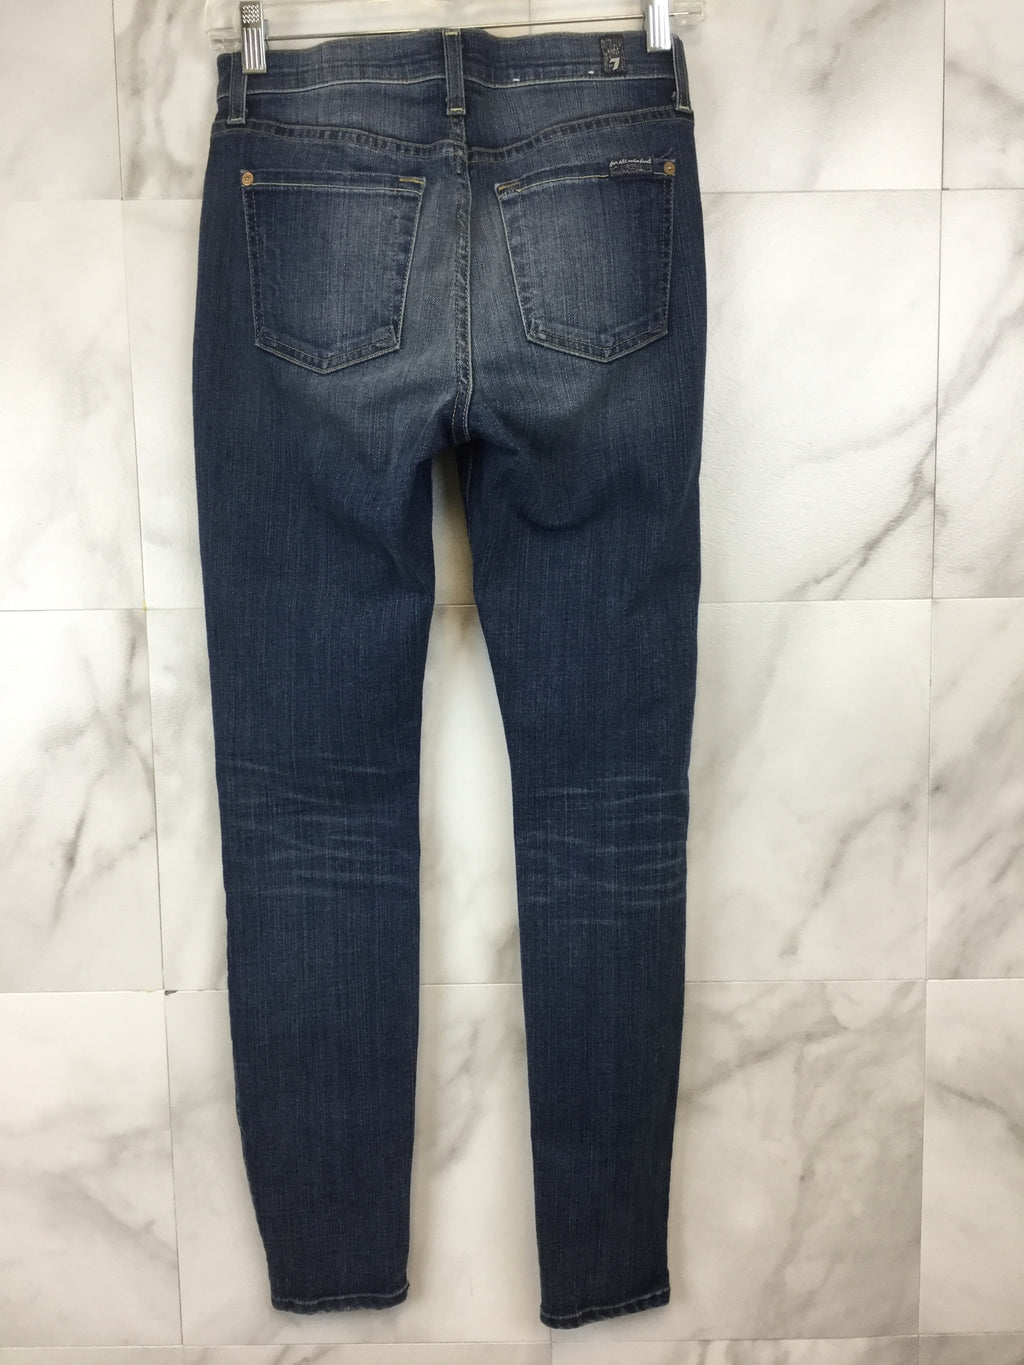 7 For All Mankind The Knee Hole Ankle Skinny - size 25